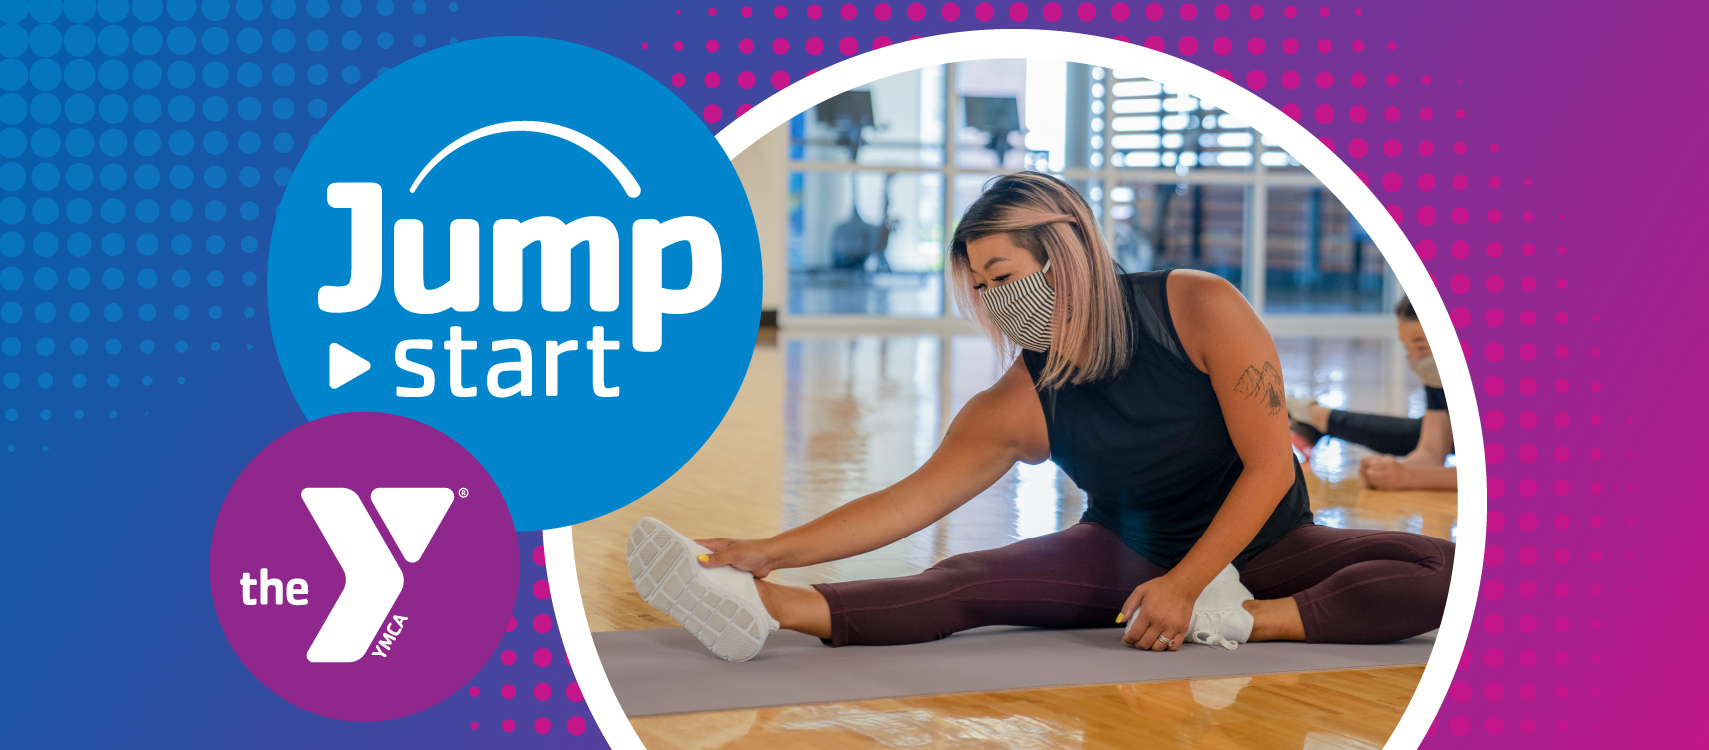 Jump start your fitness journey and get in the gym